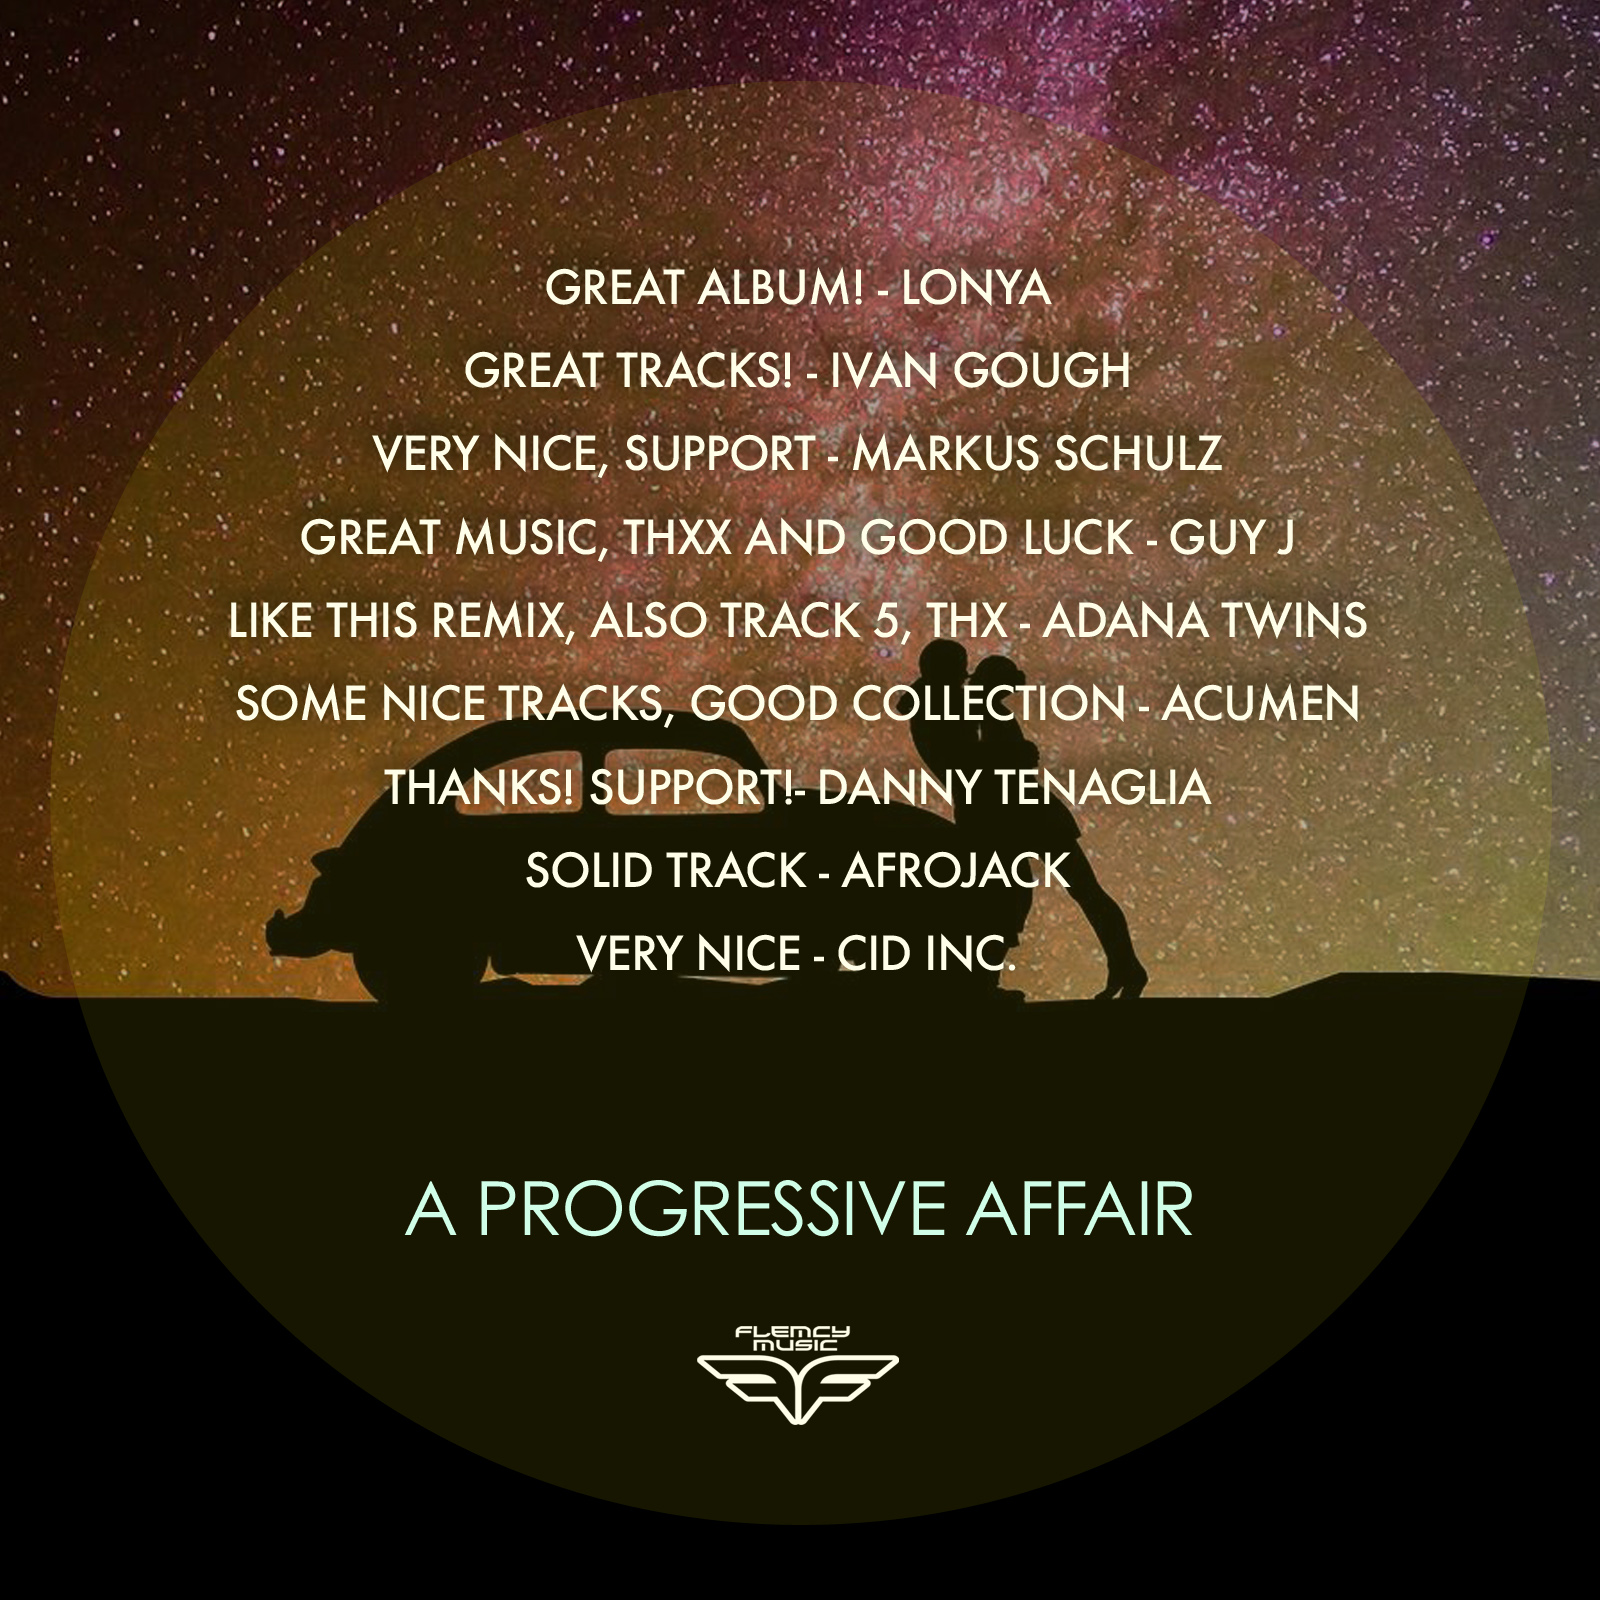 A Progressive Affair: Thanks for the support